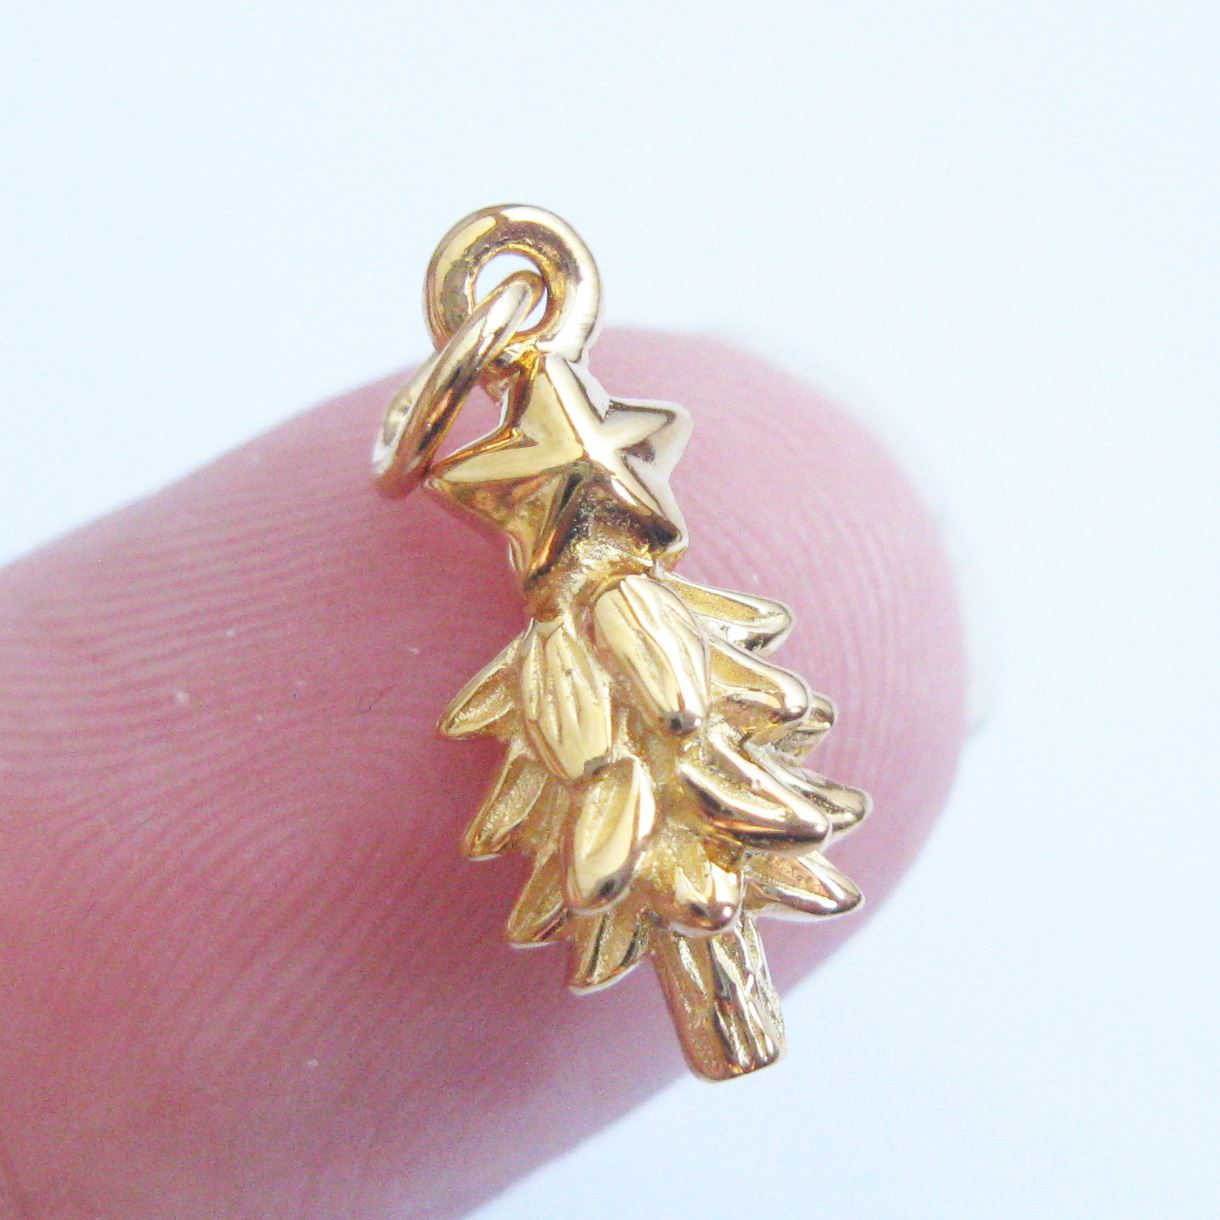 22K Gold plated Sterling Silver Charms, Vermeil Christmas Tree Charm- Holiday Charms - 15.5mm ( 2 pcs)